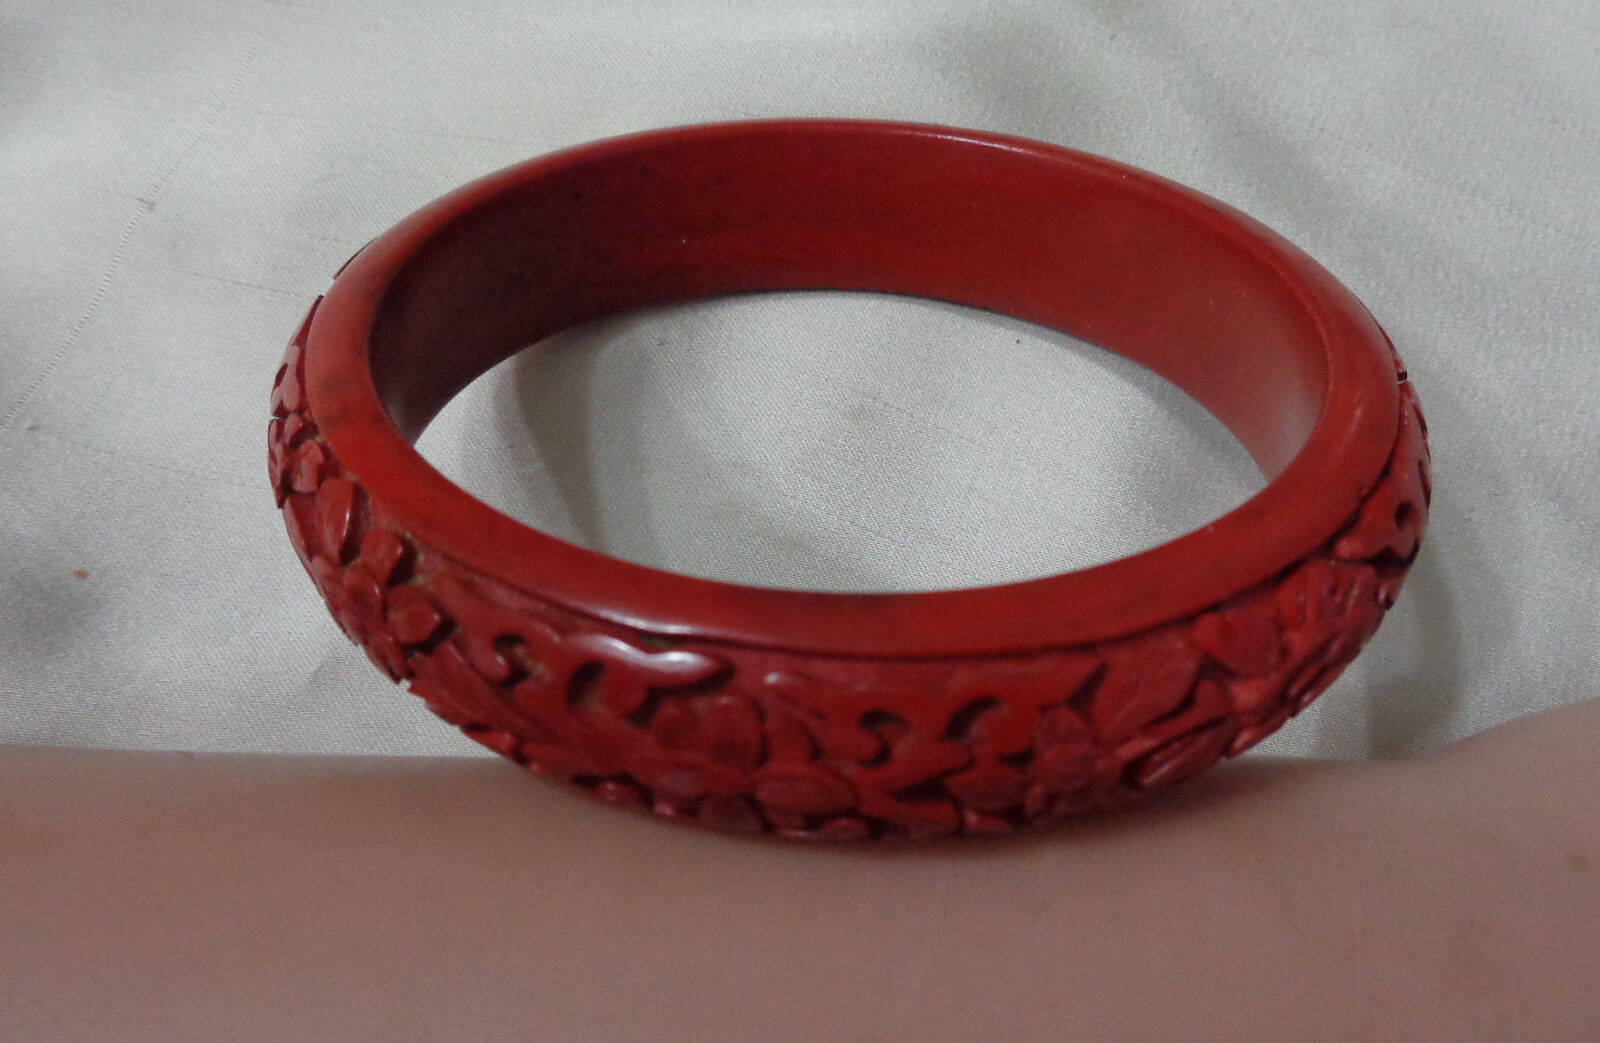 VINTAGE CINNABAR BEATIFUL BRACELET DK RED FLORAL DESIGN - $75.00